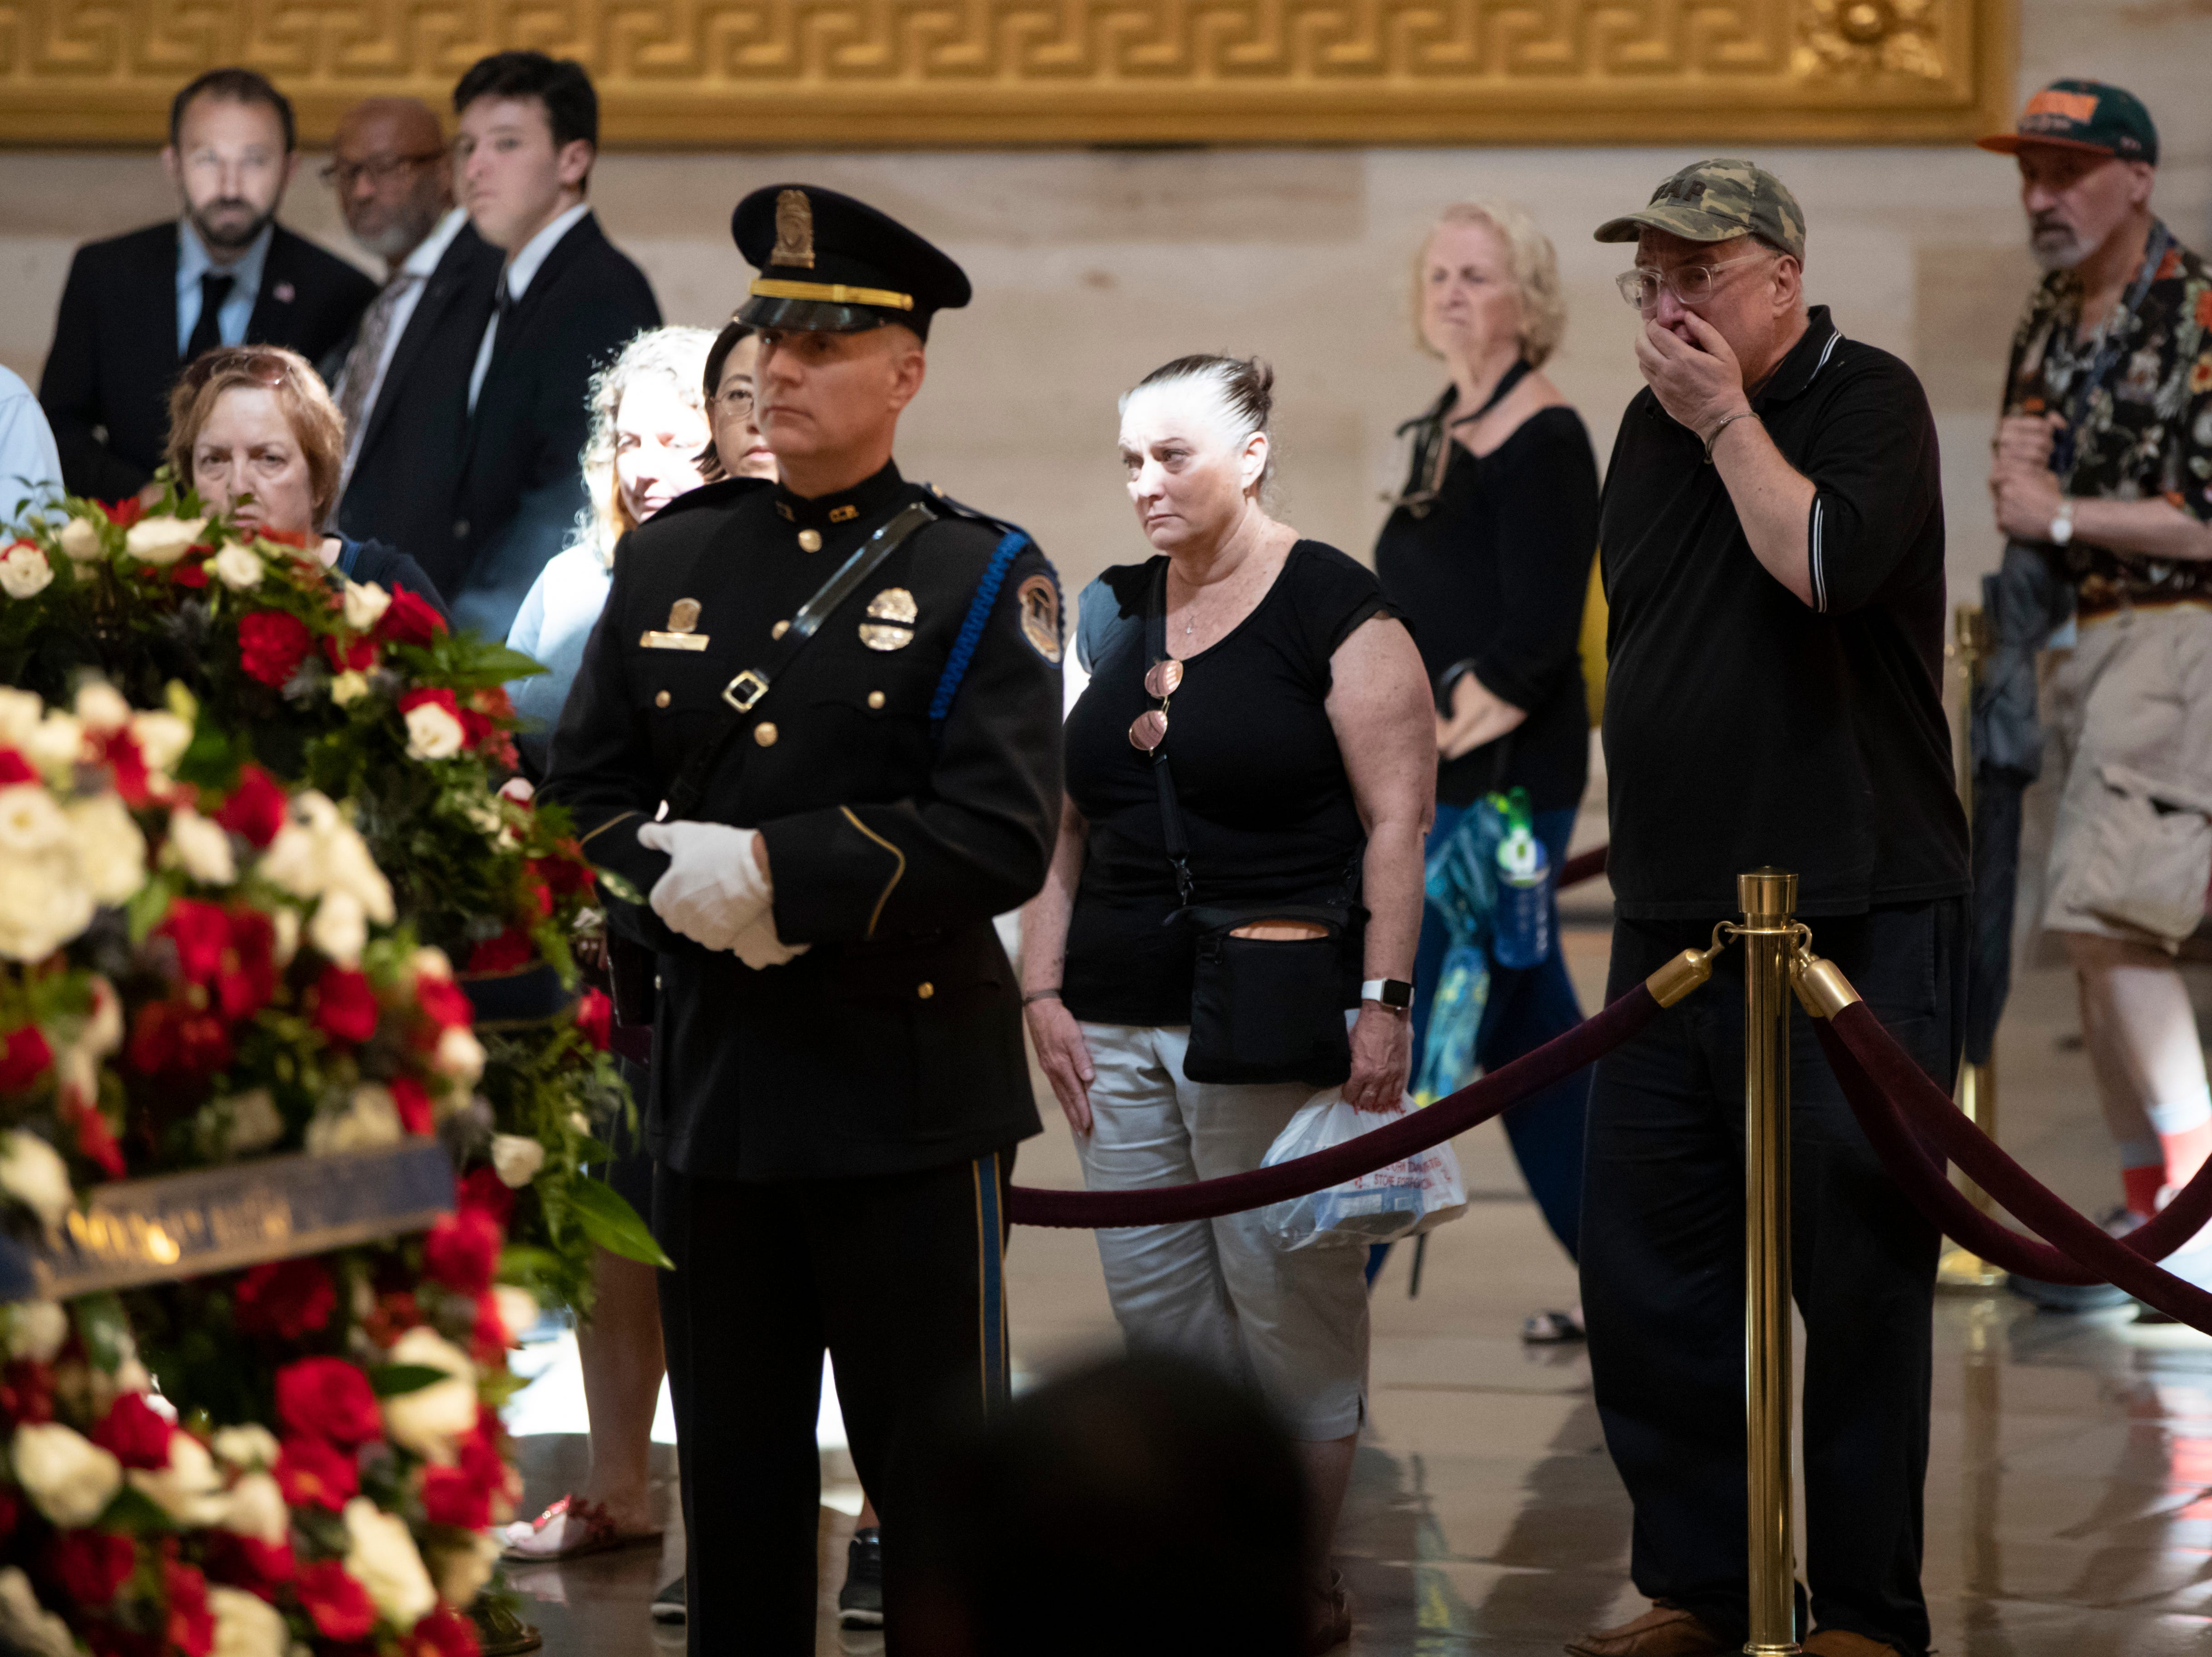 Members of the public walk past the flag-draped casket bearing the remains of John McCain of Arizona, who lived and worked in Congress over four decades, in the U.S. Capitol rotunda in Washington, Friday, Aug. 31, 2018. McCain was a six-term senator from Arizona, a former Republican nominee for president, and a Navy pilot who served in Vietnam where he endured five-and-a-half years as a prisoner of war. He died Aug. 25 from brain cancer at age 81. (AP Photo/J. Scott Applewhite)